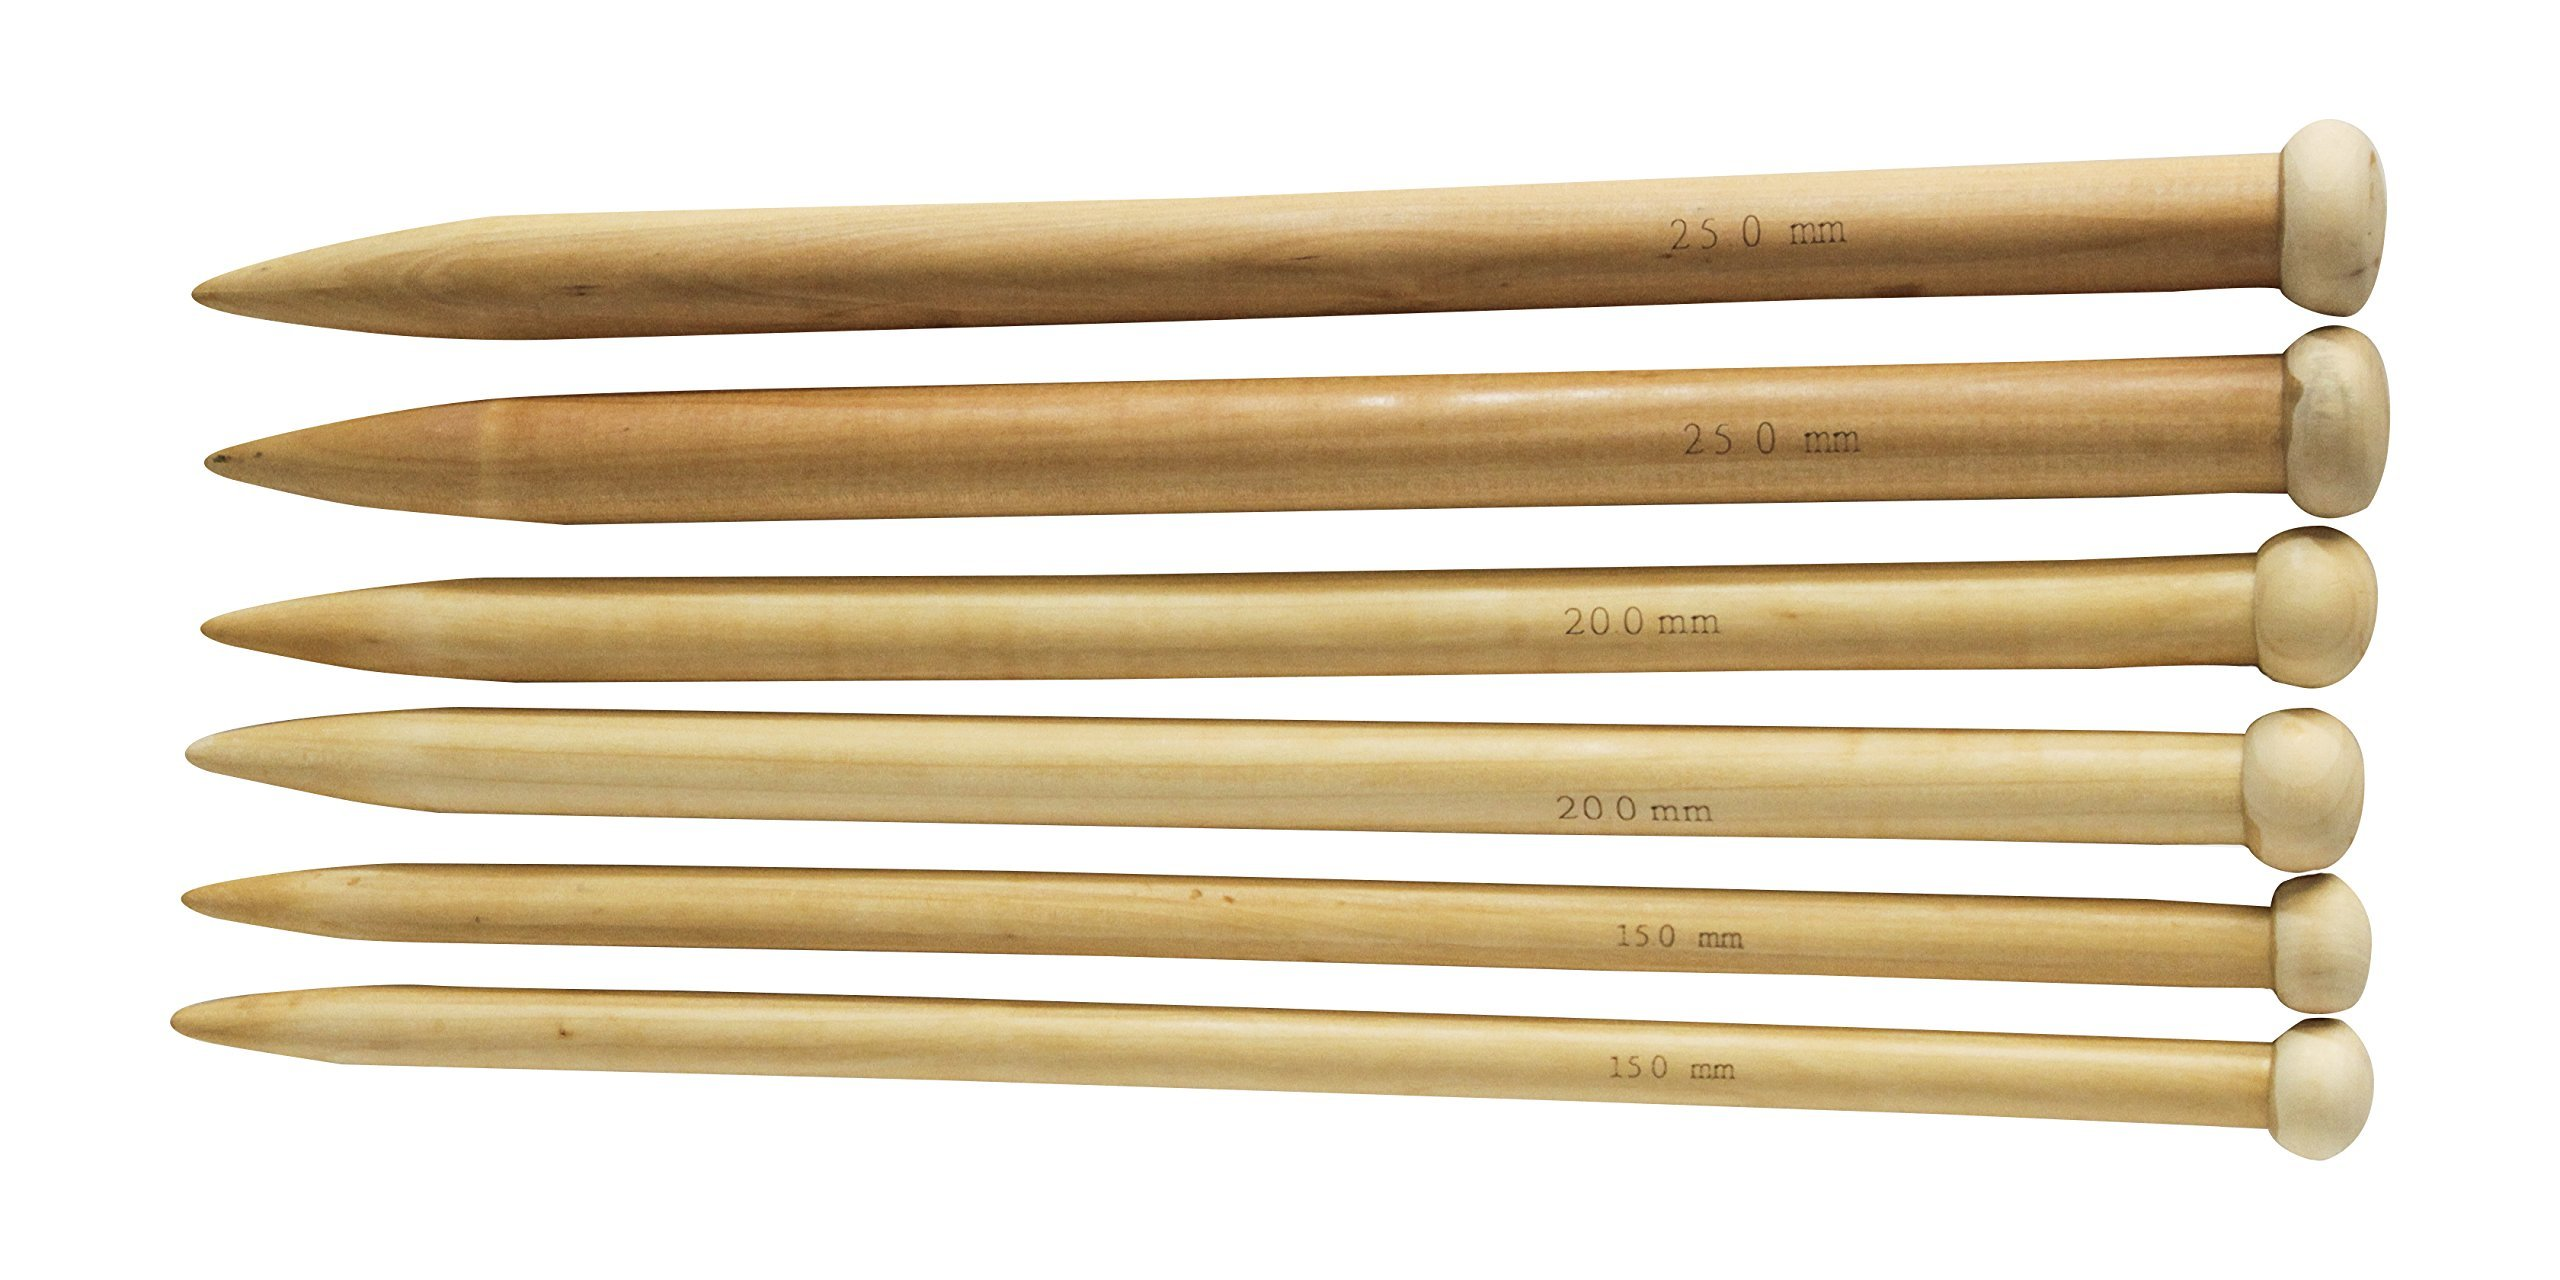 KnitPal 16'' Jumbo Straight Wooden Knitting Needles Set of 3 Beginner's Ebook I 4 Handmade Label | Large US Sizes 19, 35, and 50 | Oak Wood Thick Knit Needle Kit for Huge Chunky Yarn by KnitPal (Image #2)